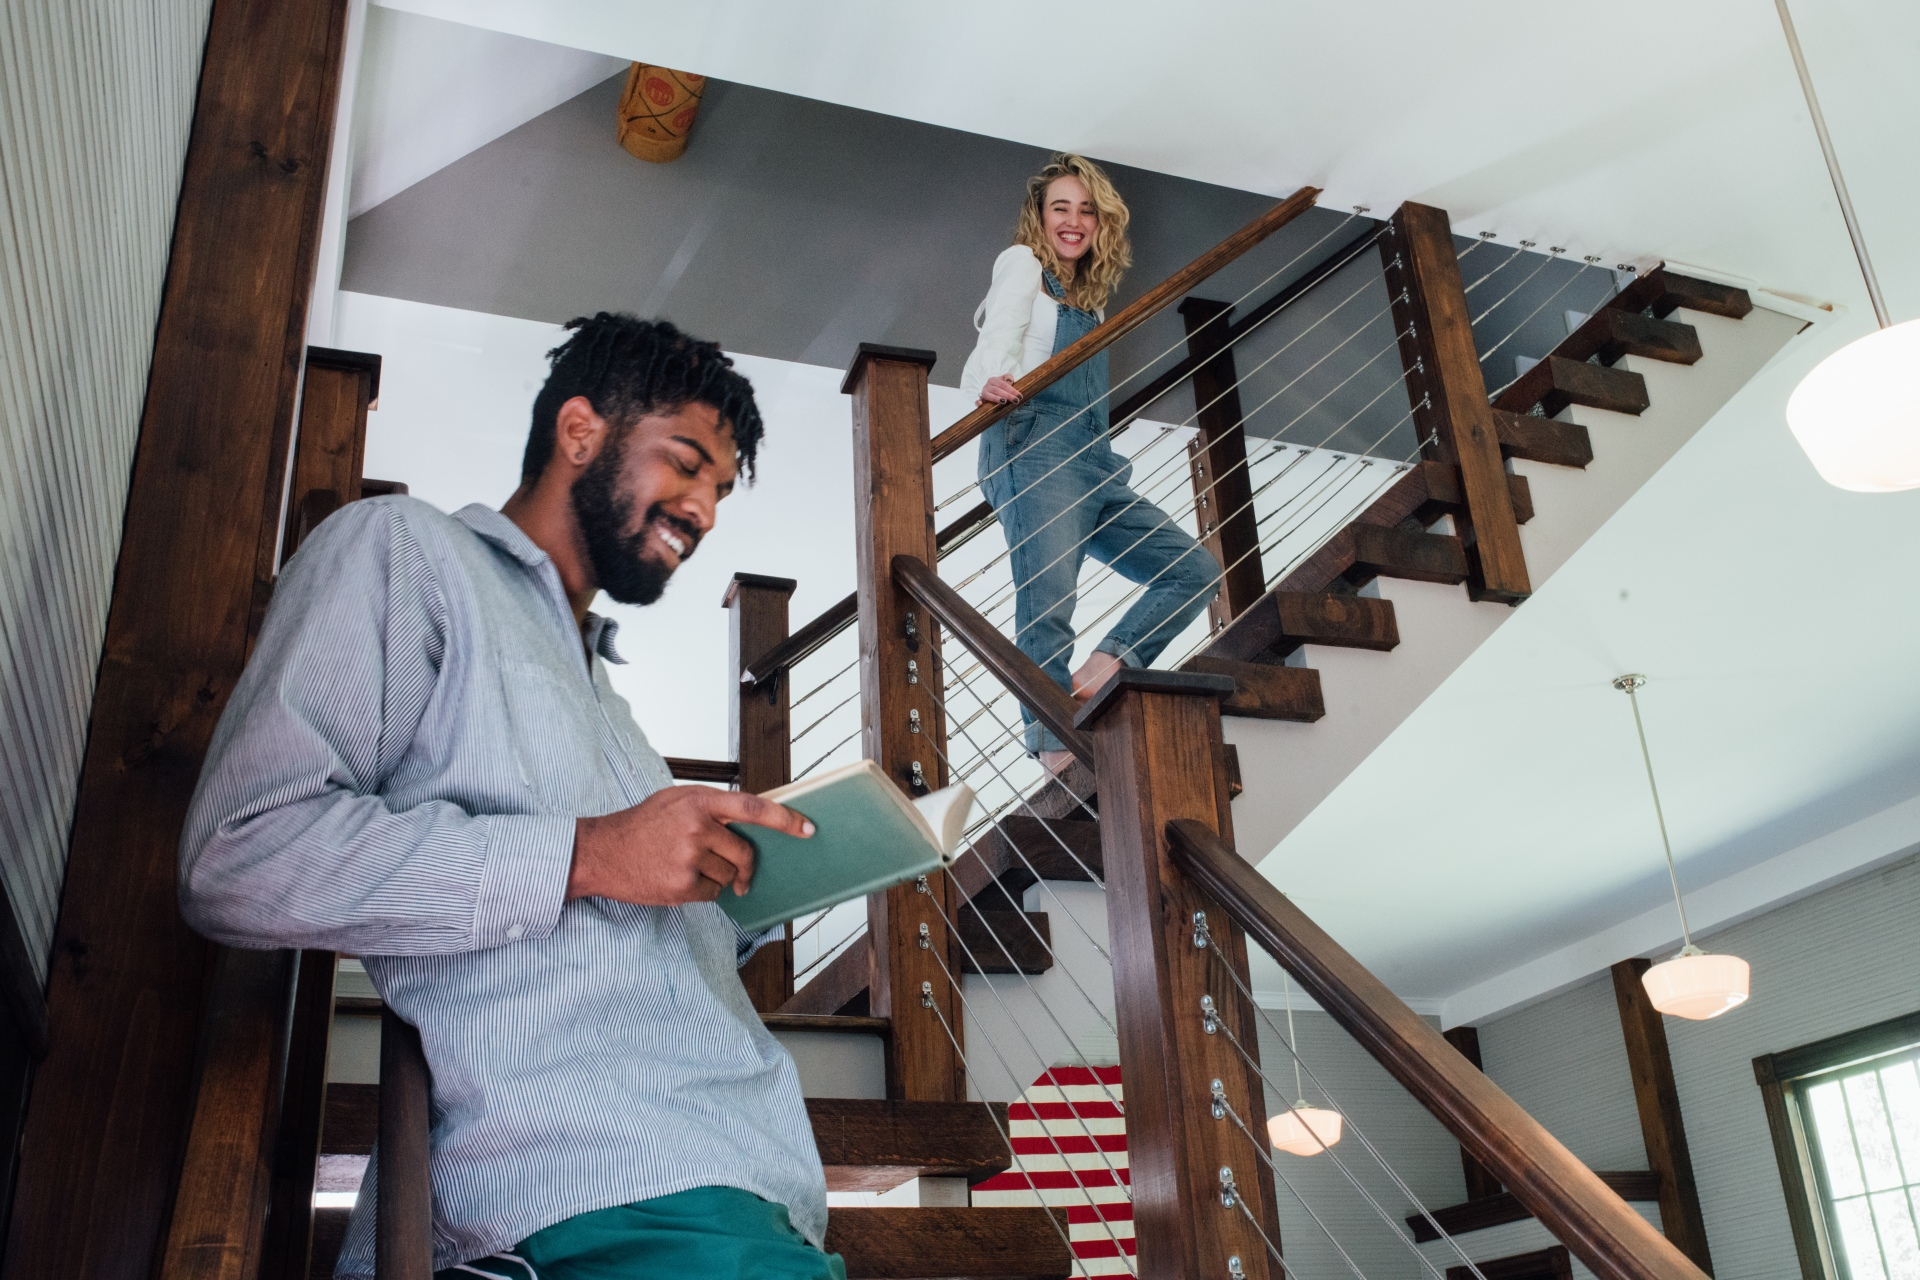 cute couple hanging out on stairs